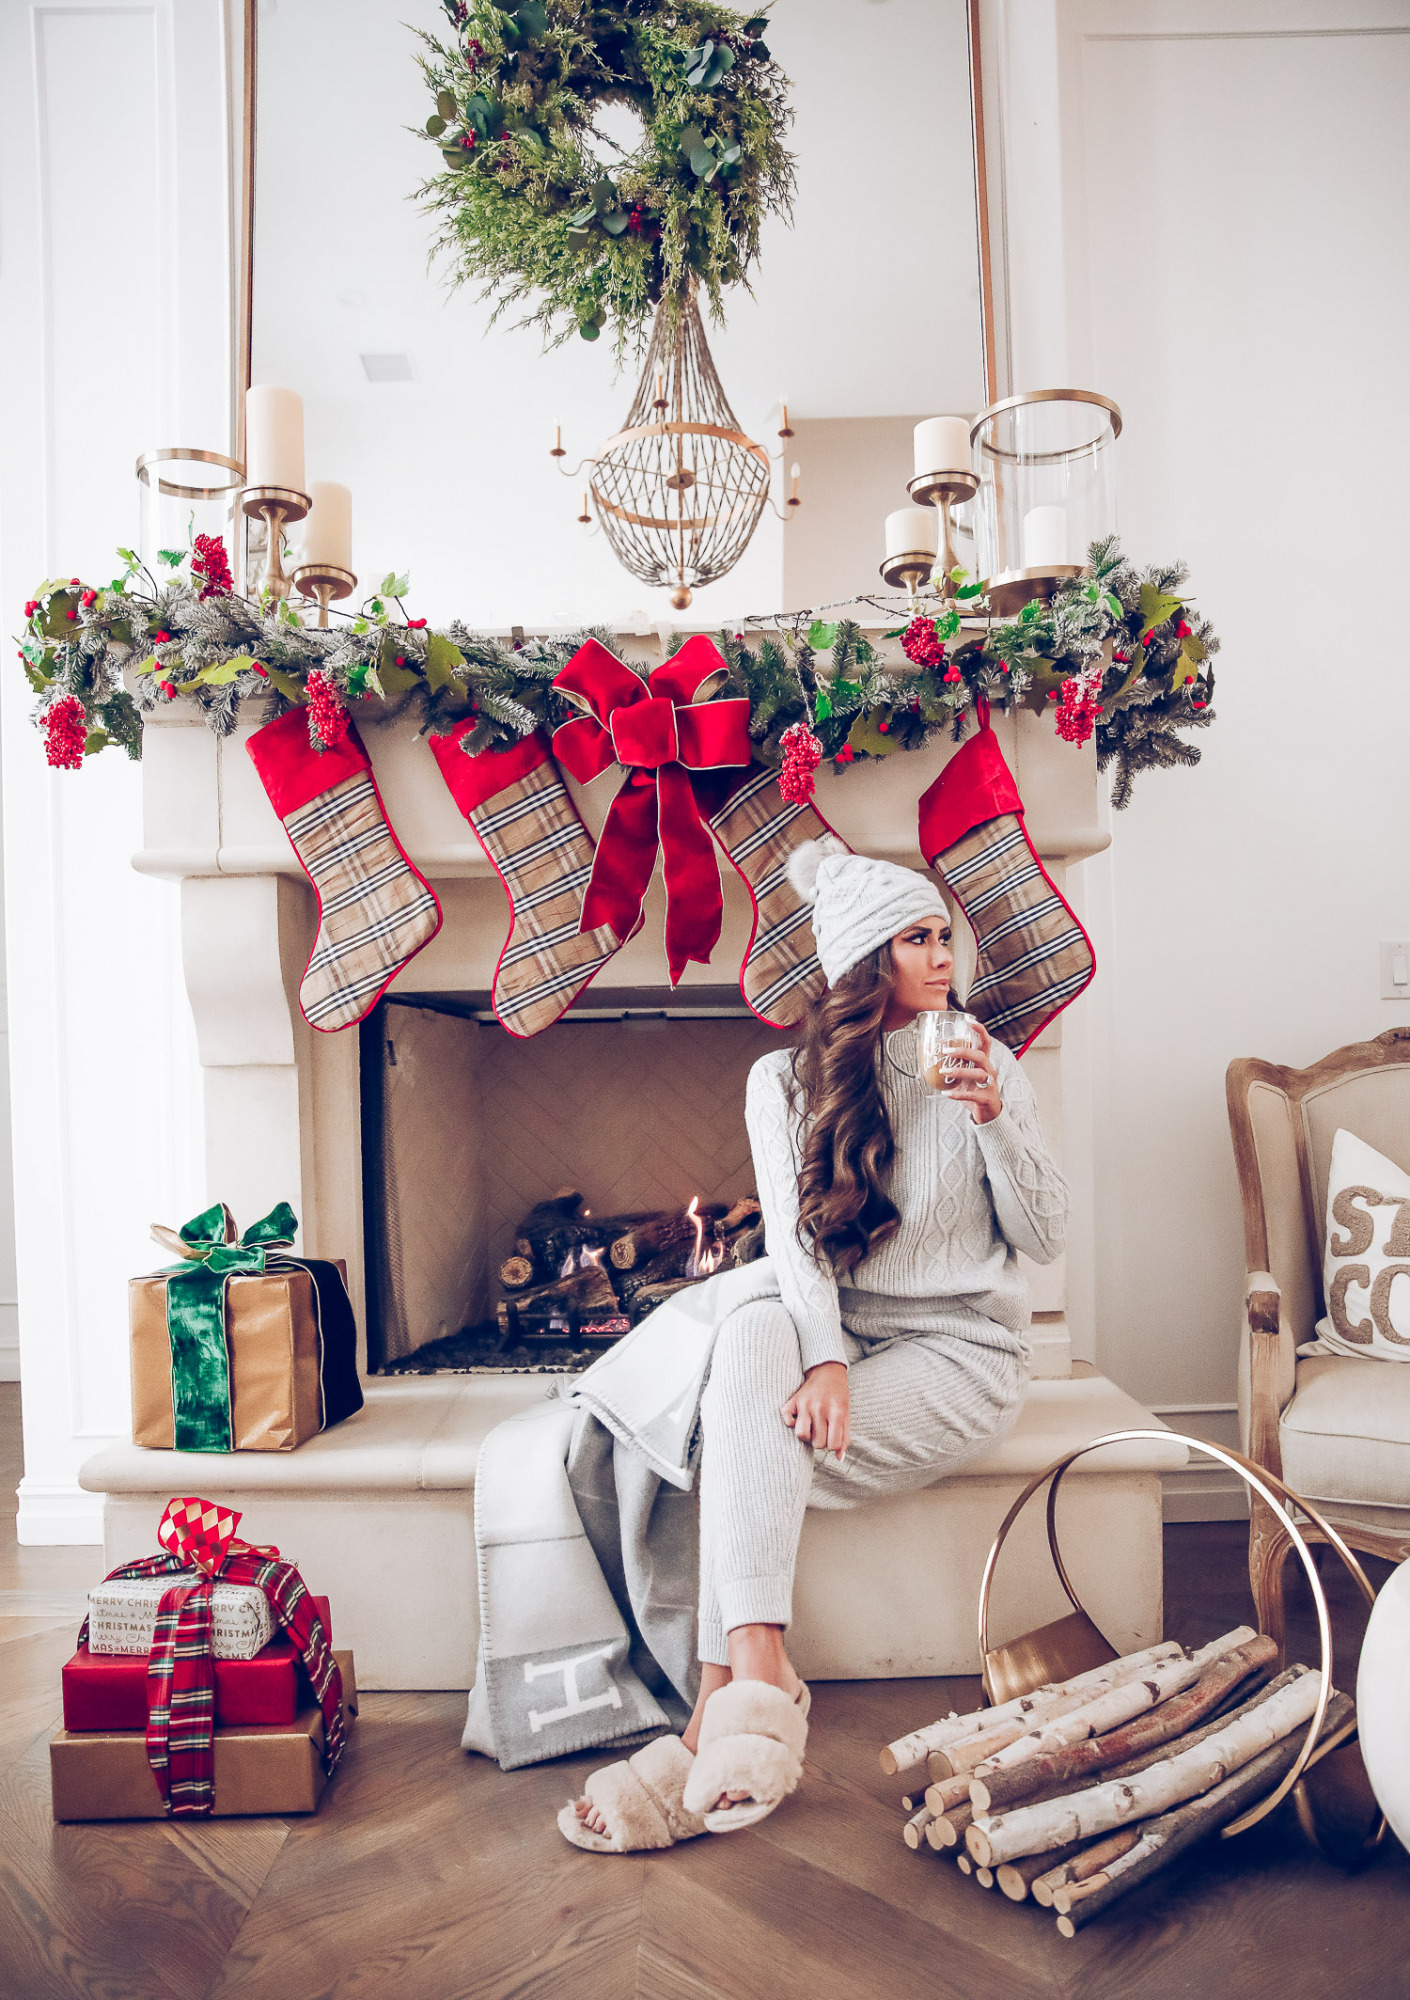 Express loungewear holiday 2020, express sweatsuit december 2020, emily gemma, holiday fireplace garland christmas | Cute Loungewear by popular US fashion blog, The Sweetest Thing: image of Emily Gemma sitting in front of a fireplace decorated with a garland, plaid stockings, and wrapped presents and wearing an Express sweater, Express pants, Express fuzzy slippers, and an Express pom beanie.